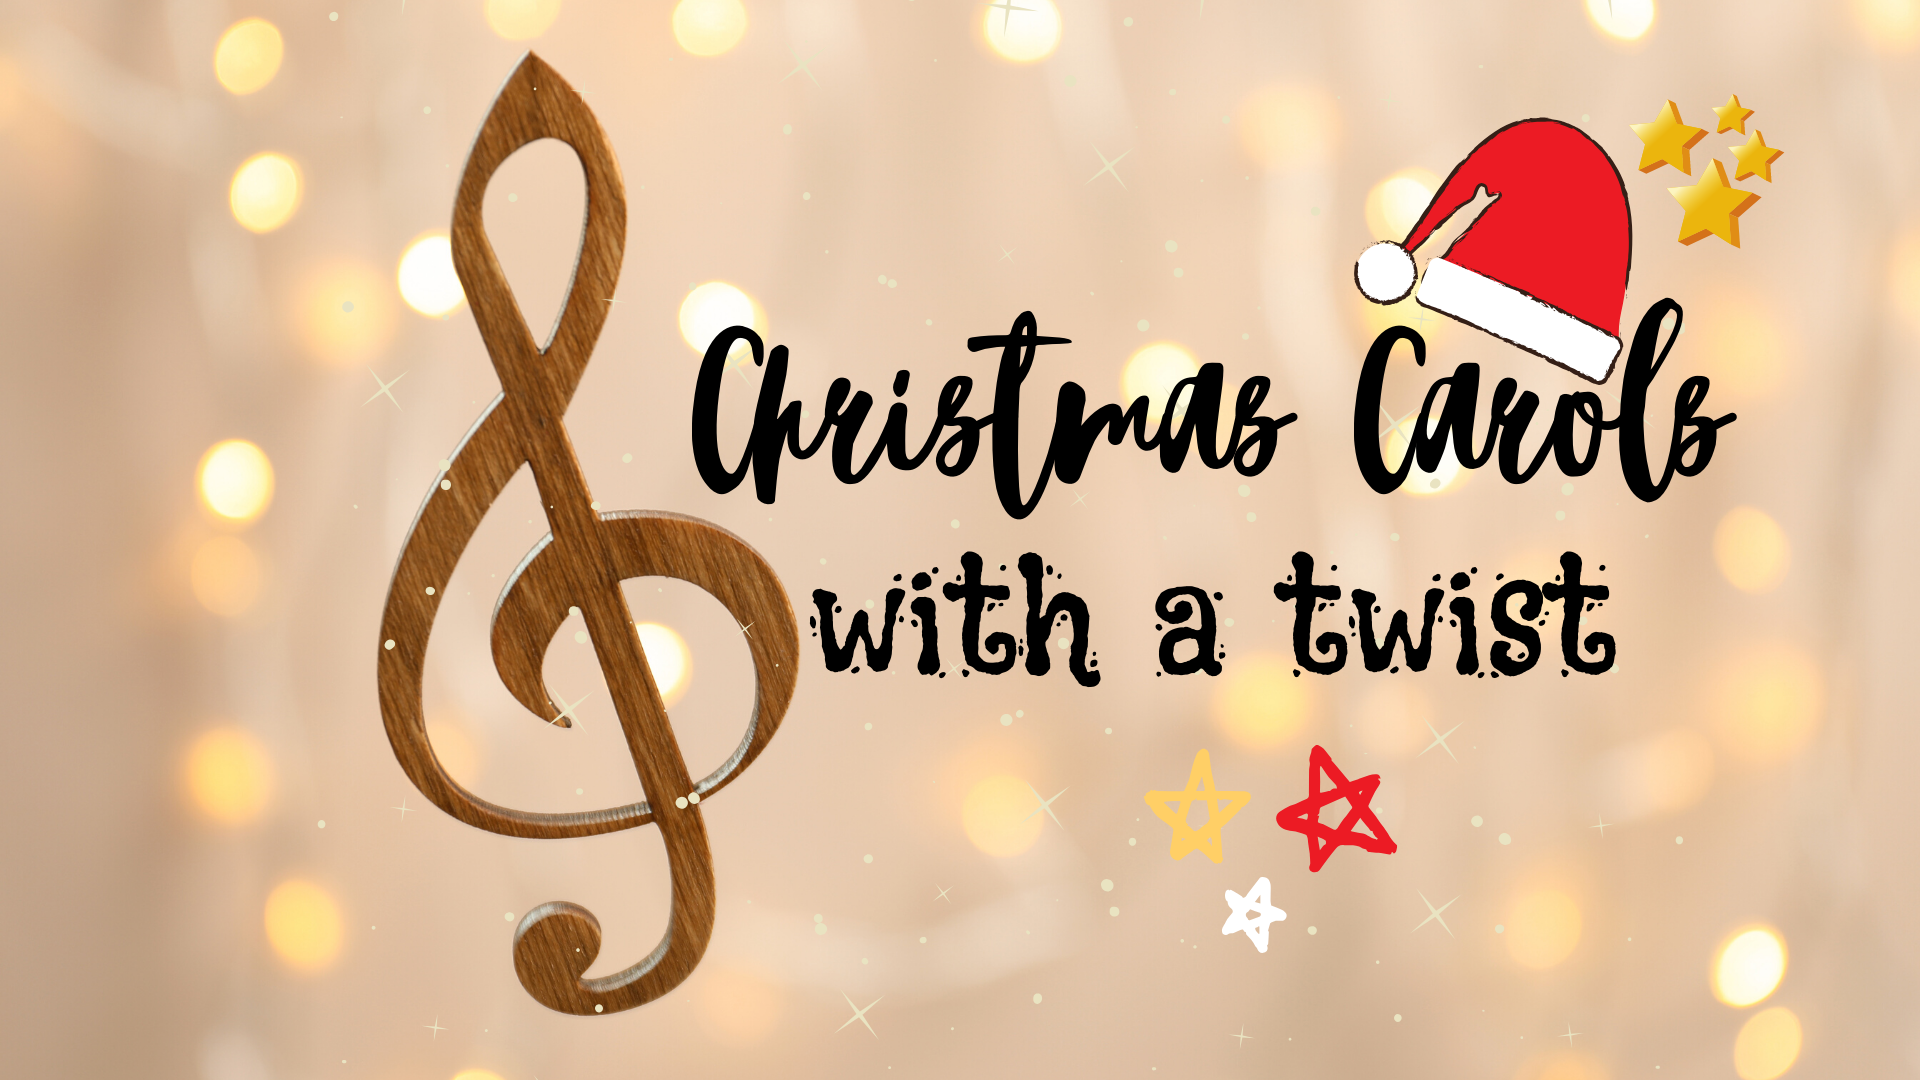 Christmas carols and entertainment at The Ship Inn Wool